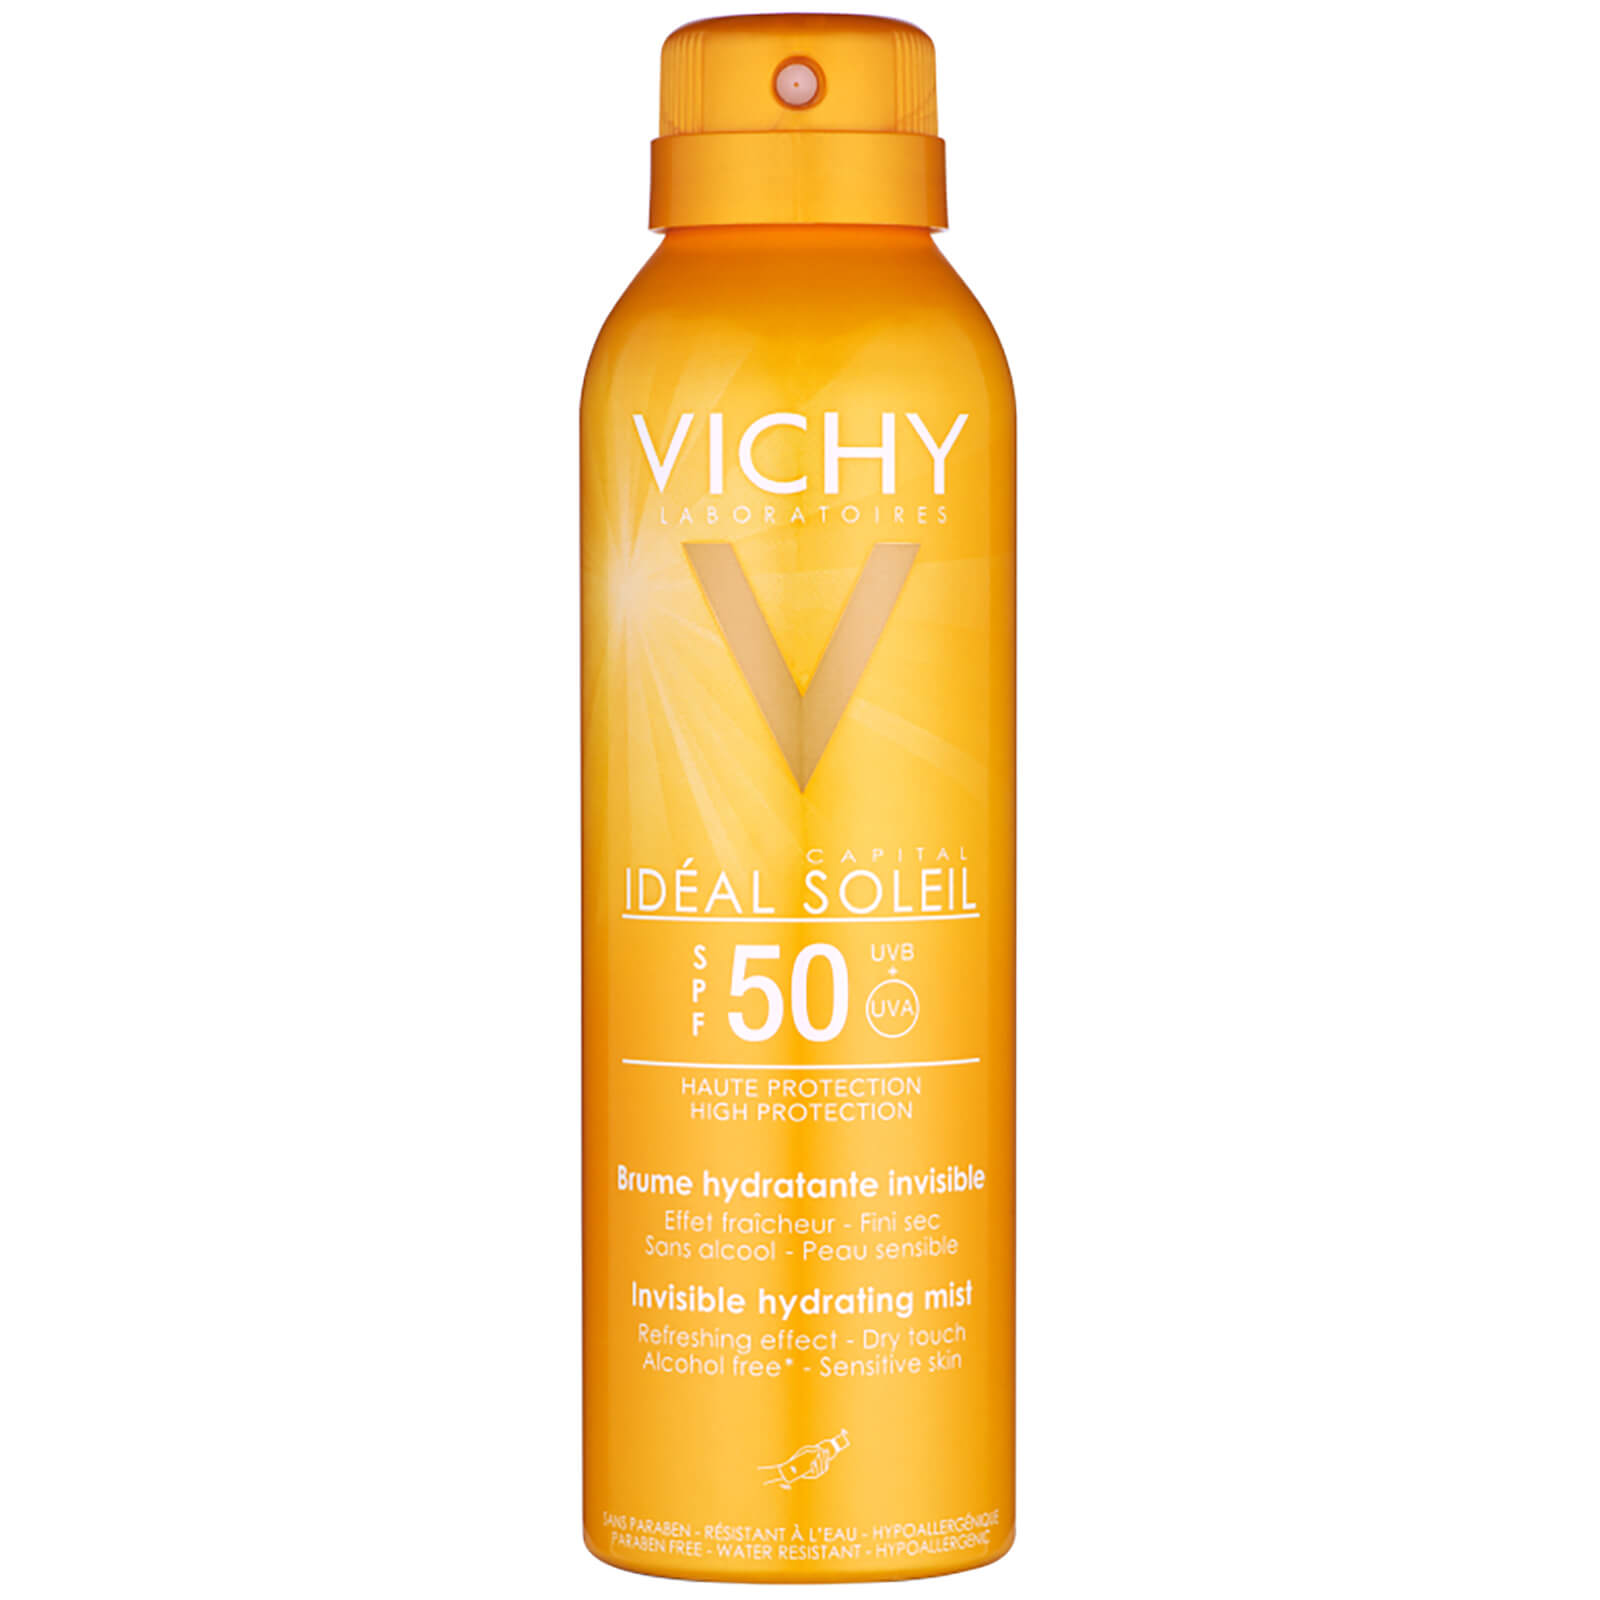 Vischy Ideal Soleil Spf 50 Spray